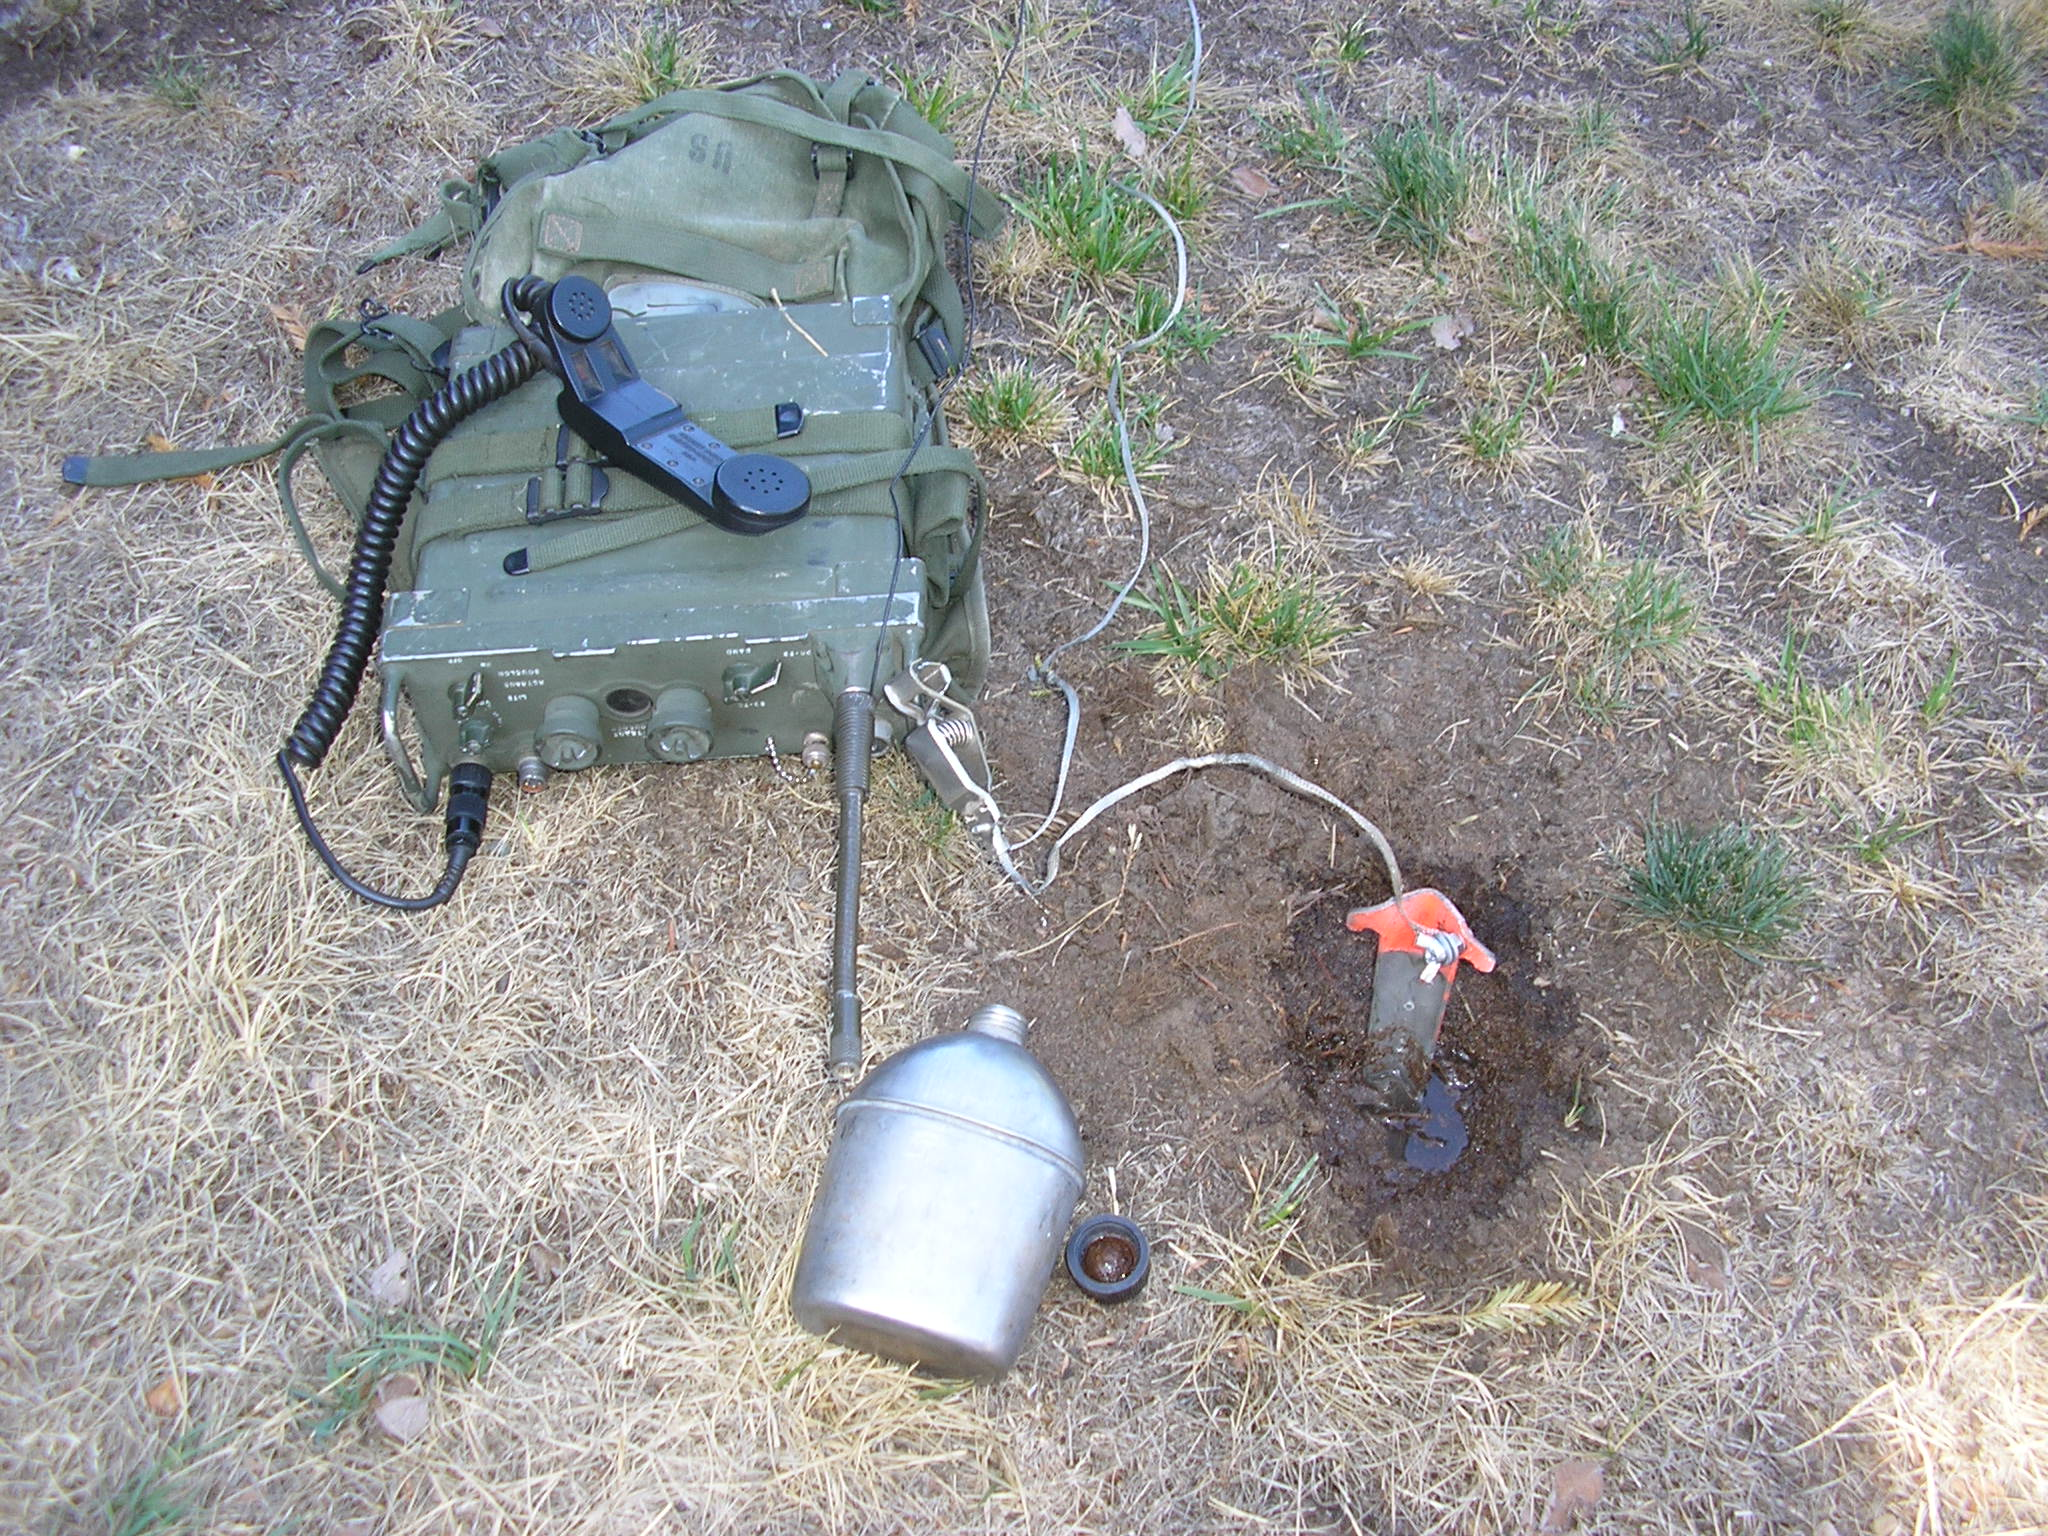 Grounding the PRC-25